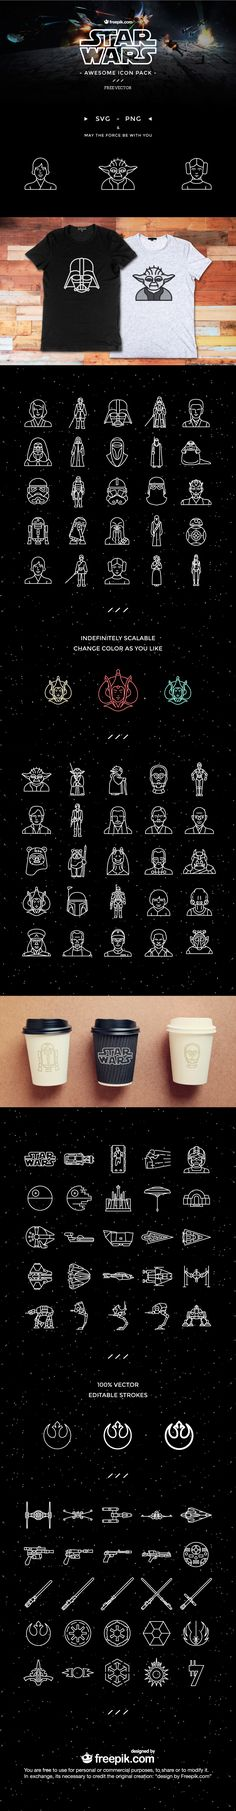 An amazing pack of 100 FREE Star Wars icons designed exclusively by Freepik. All your favourite characters are there, including Yoda, Luke, Darth Vader, and even Jar Jar Binks! Web Design, Icon Design, Graphic Design, Carte Star Wars, Star Wars Icons, Doodle Icon, Star Wars Tattoo, The Force Is Strong, Star Wars Party